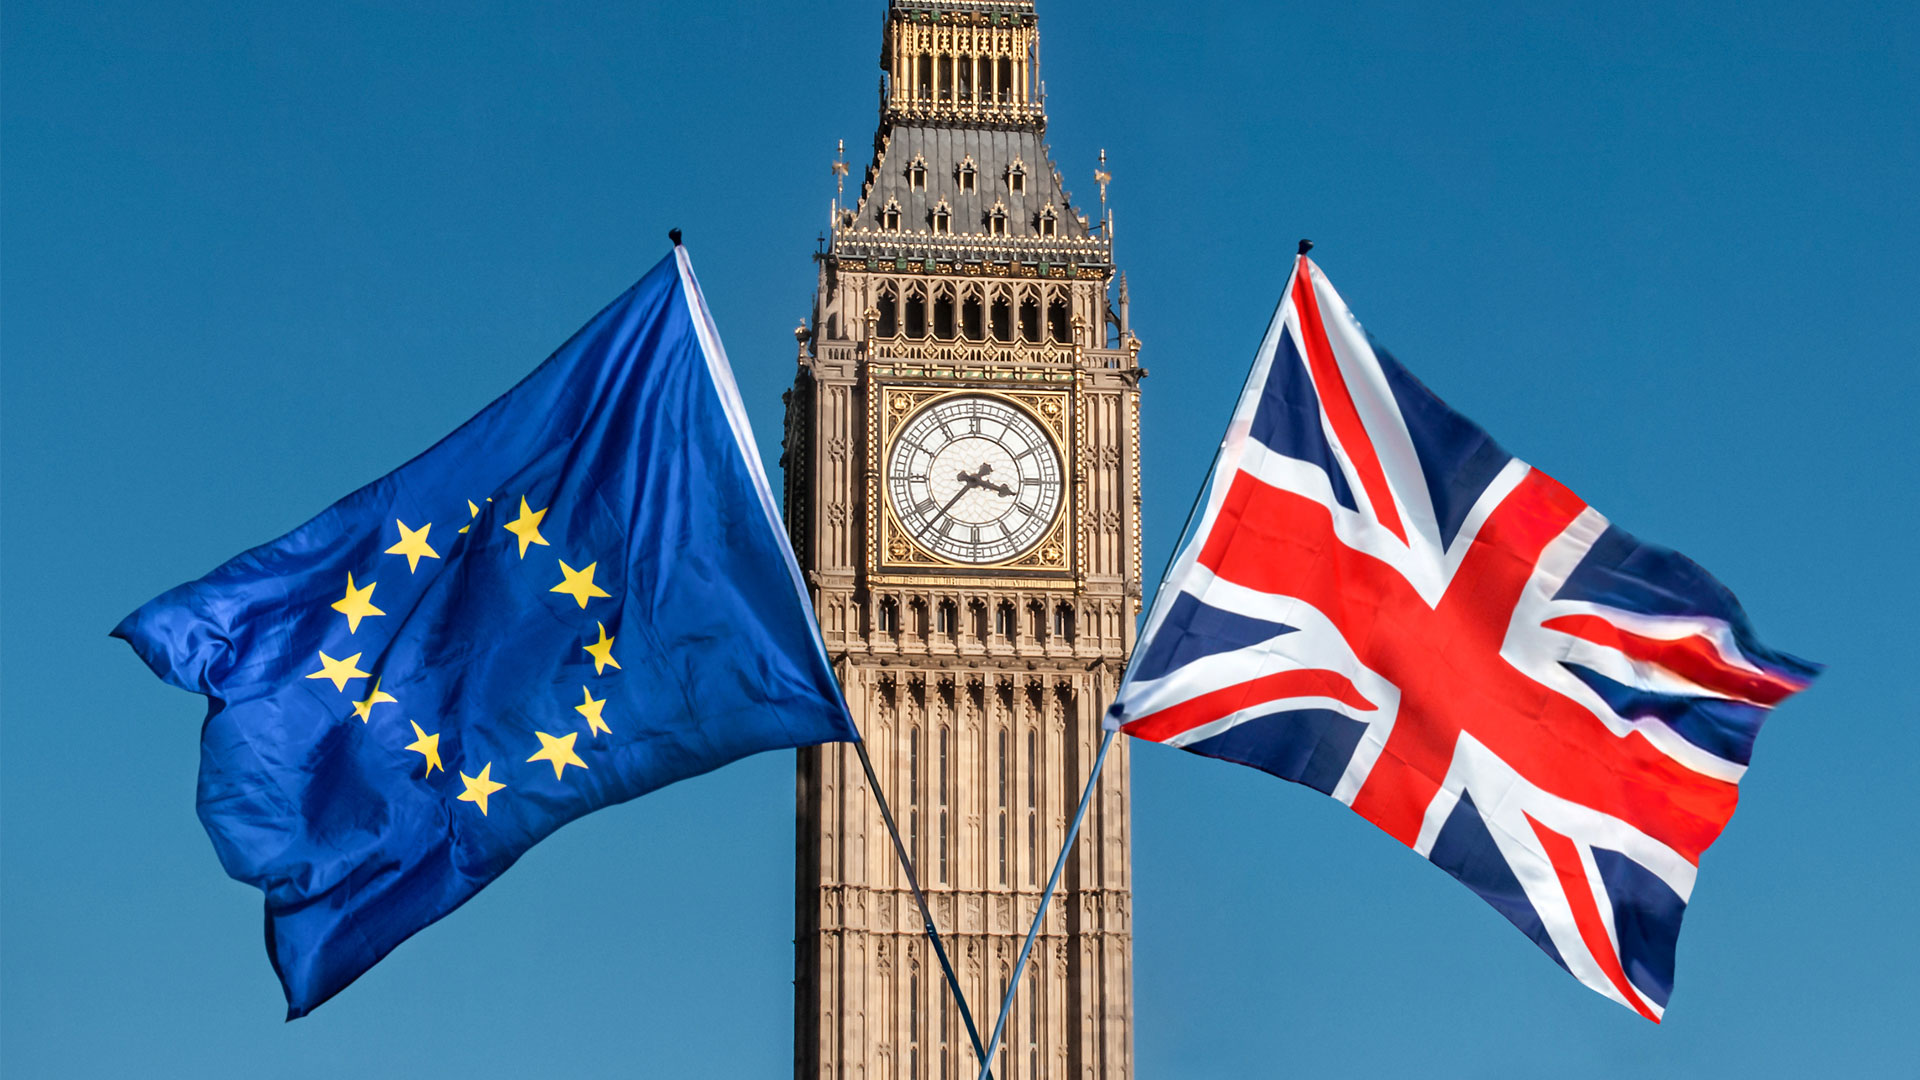 banner__eu-uk-flags-big-ben.jpg